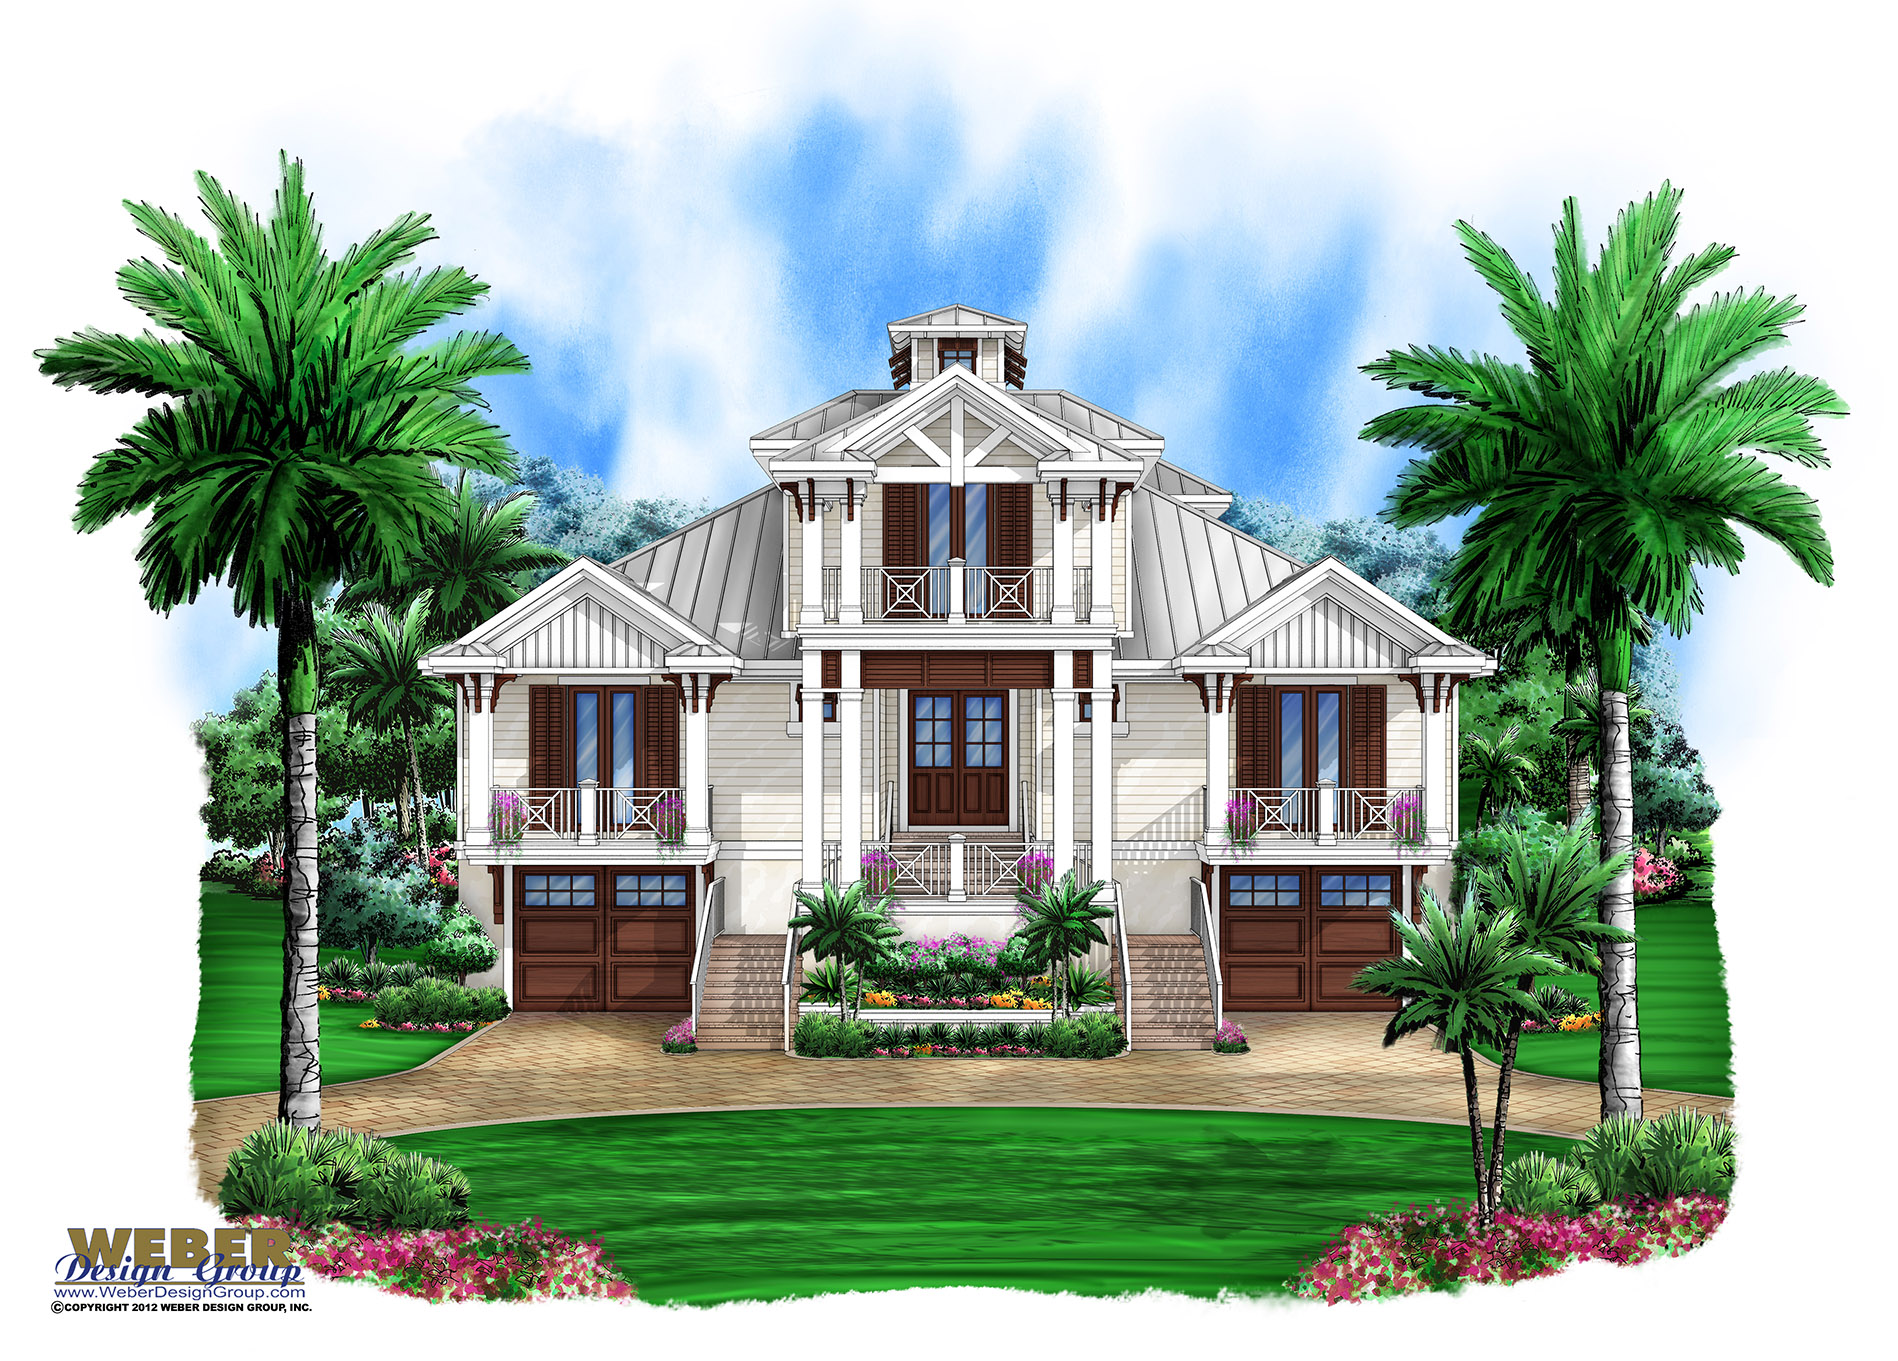 Marsh harbour olde florida house plan weber design group for Florida home designs